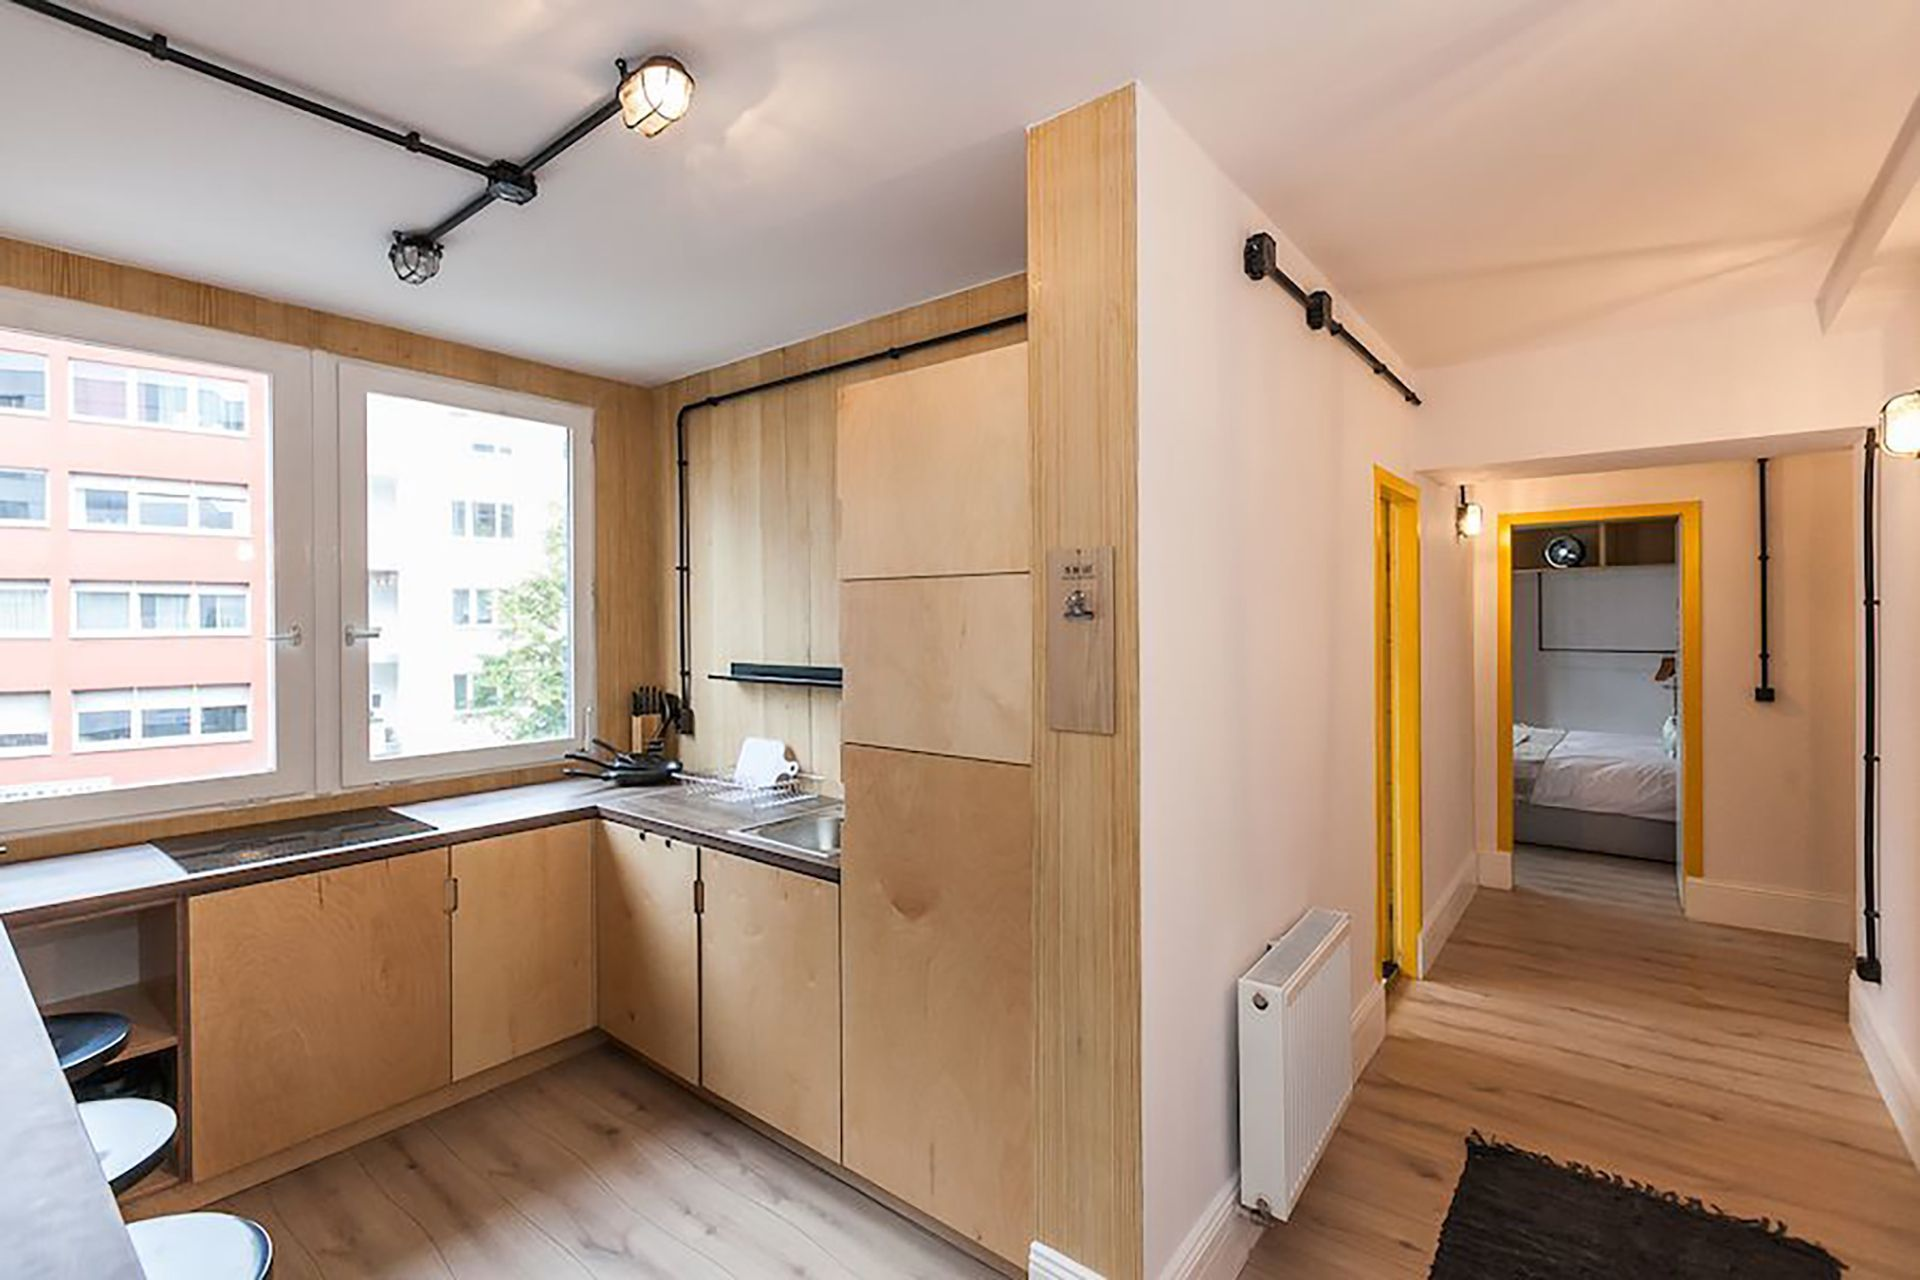 Private Room - Small apartment to rent in Berlin BILE-LE96-6080-3